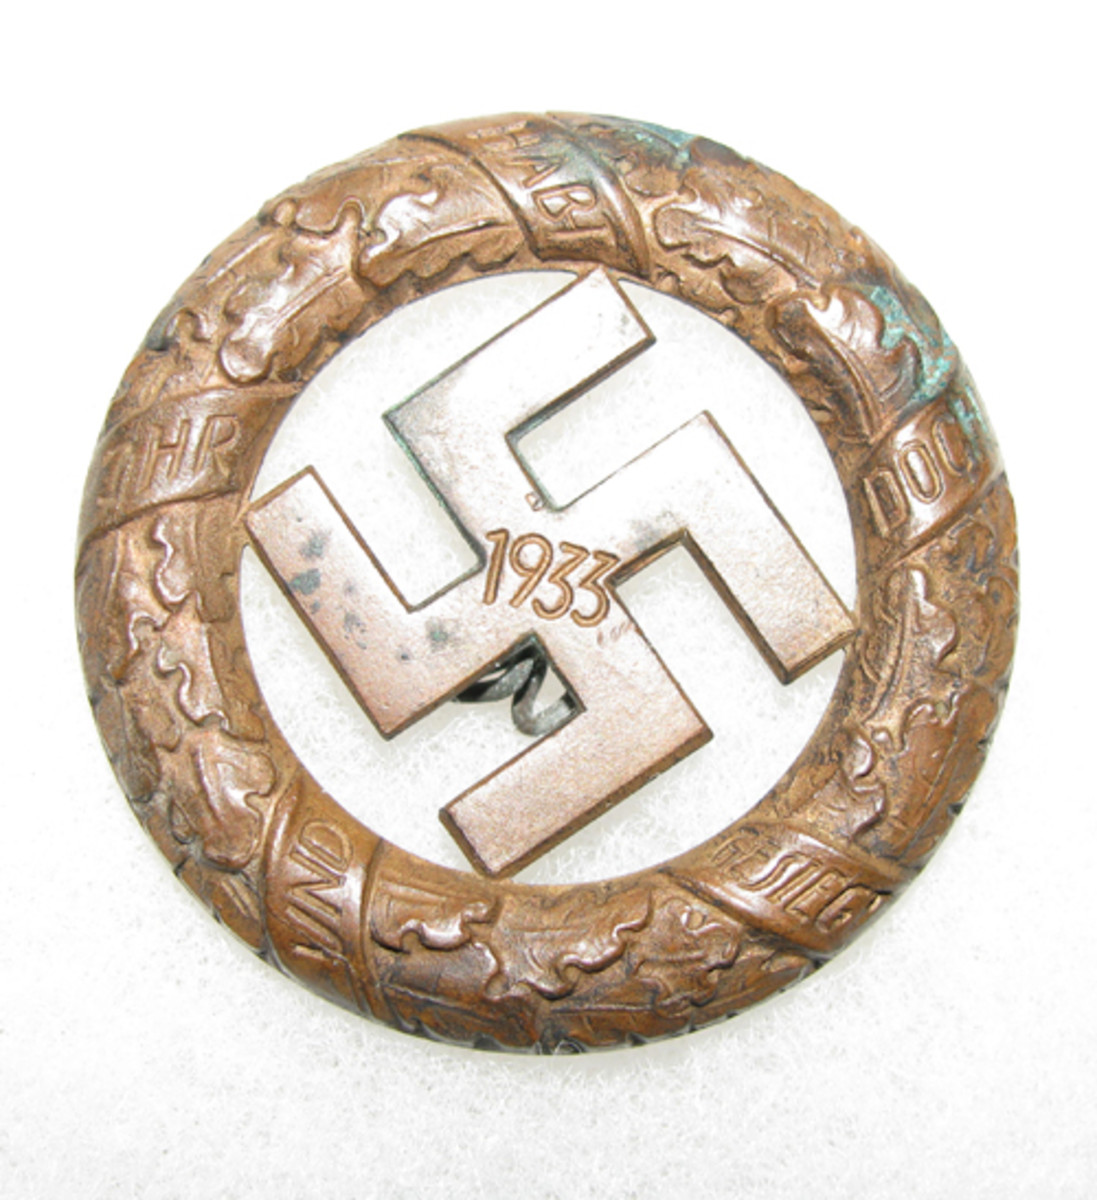 hough a regional traditions badge, the 1933 Munich day badge did not receive national recognition.